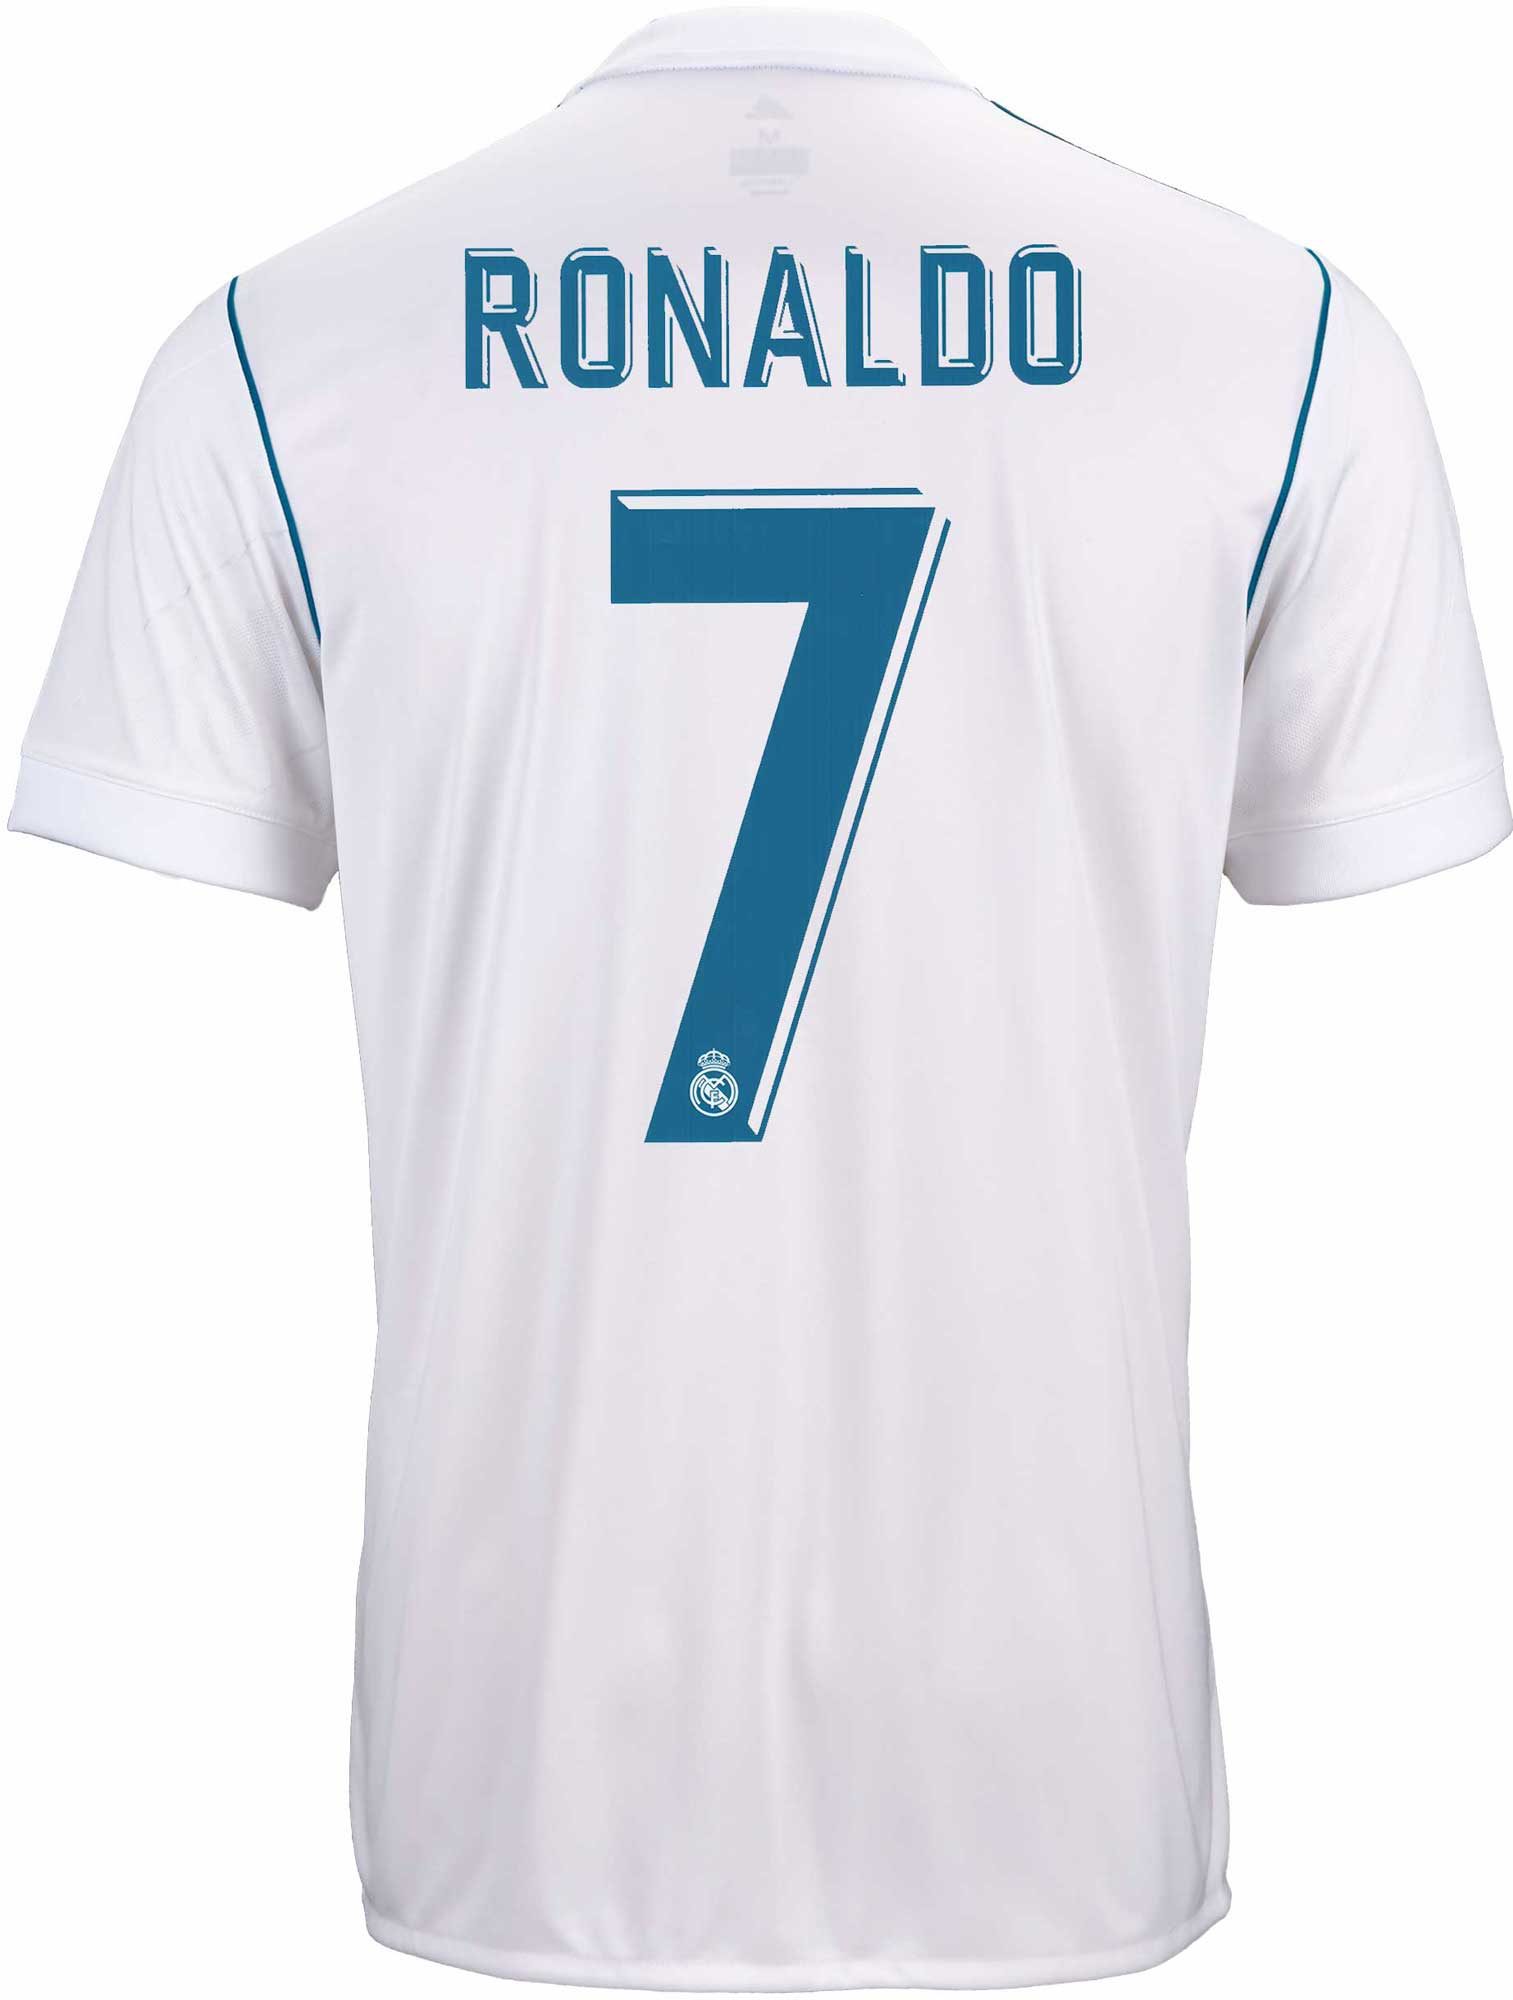 sports shoes 6c76c 424a9 adidas Cristiano Ronaldo Real Madrid Home Jersey 17-18